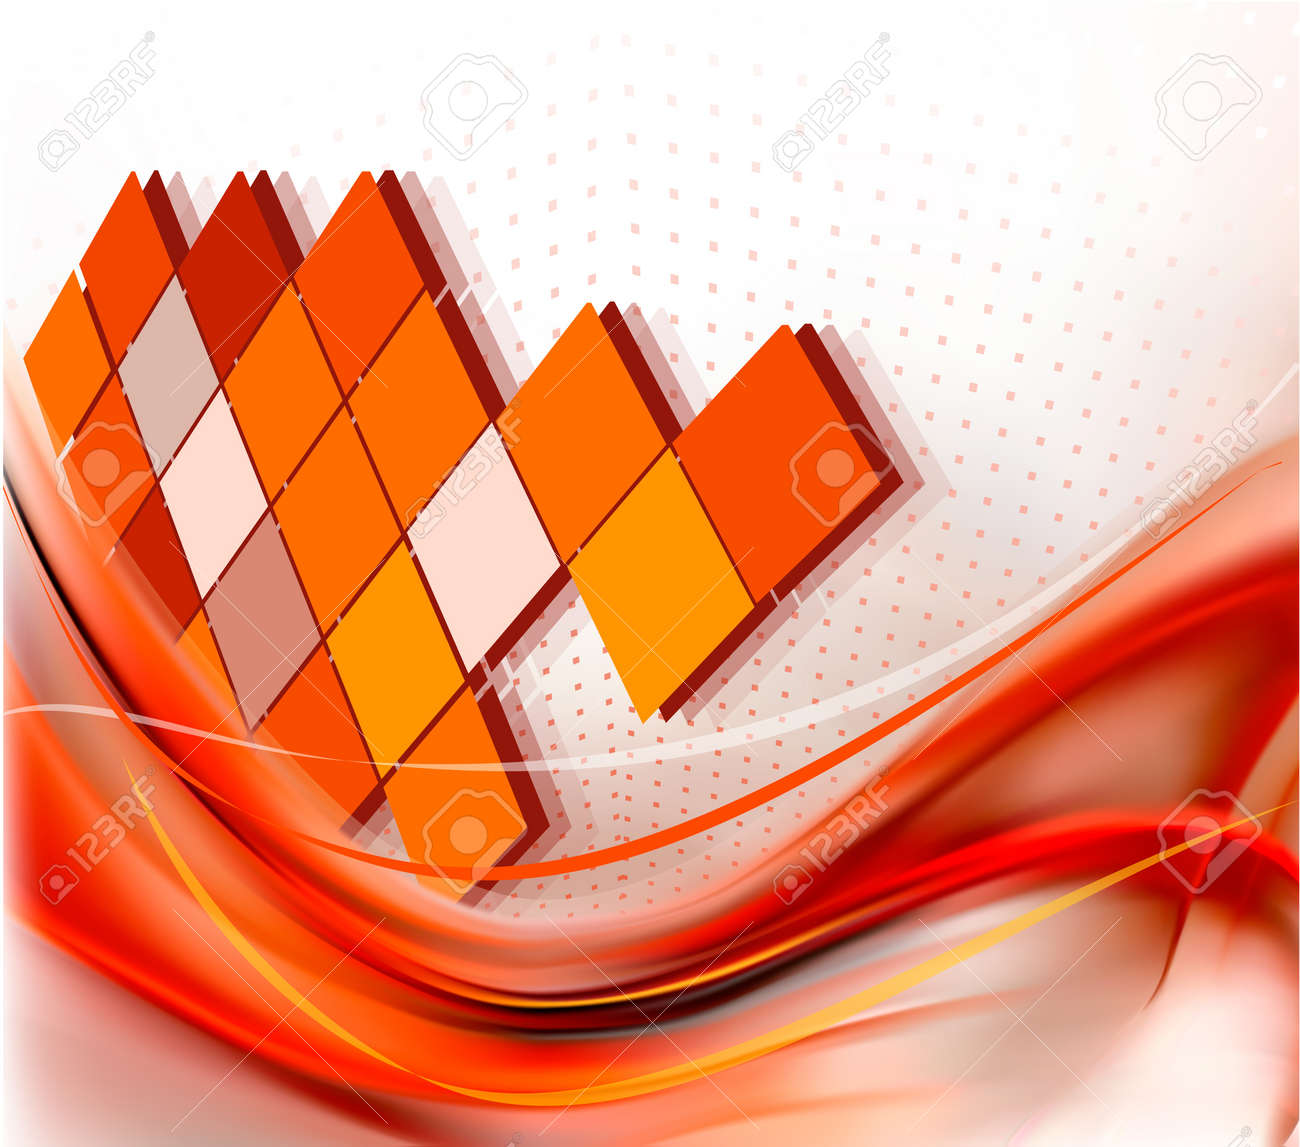 Business elegant abstract background - 13227075